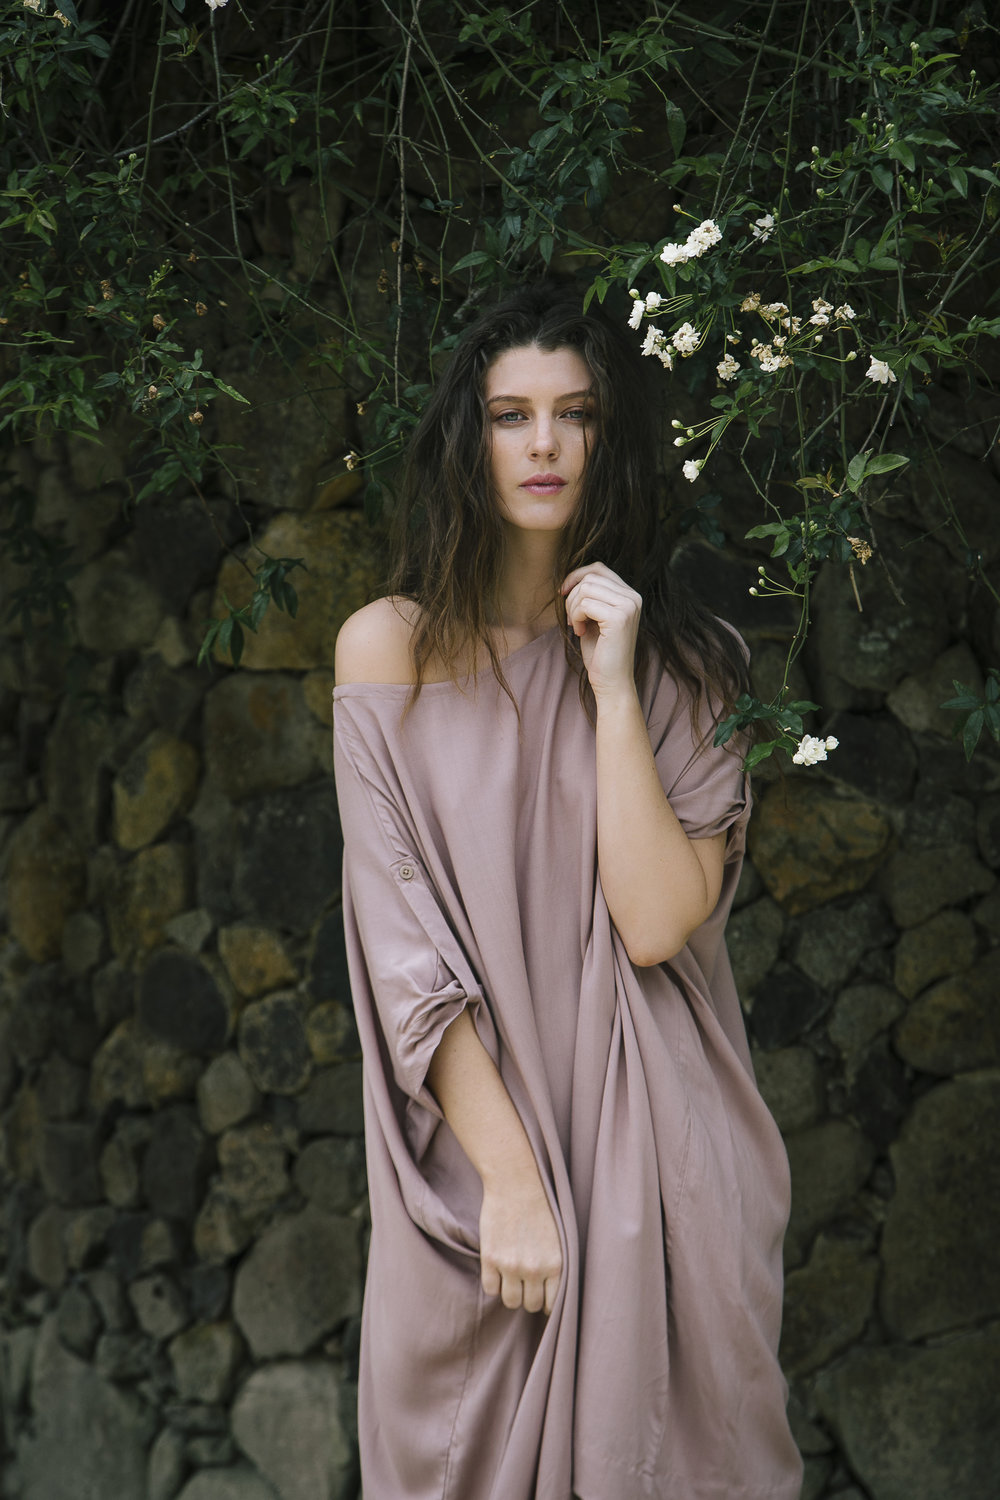 Valencia_dress_Nude_1_2016.jpg